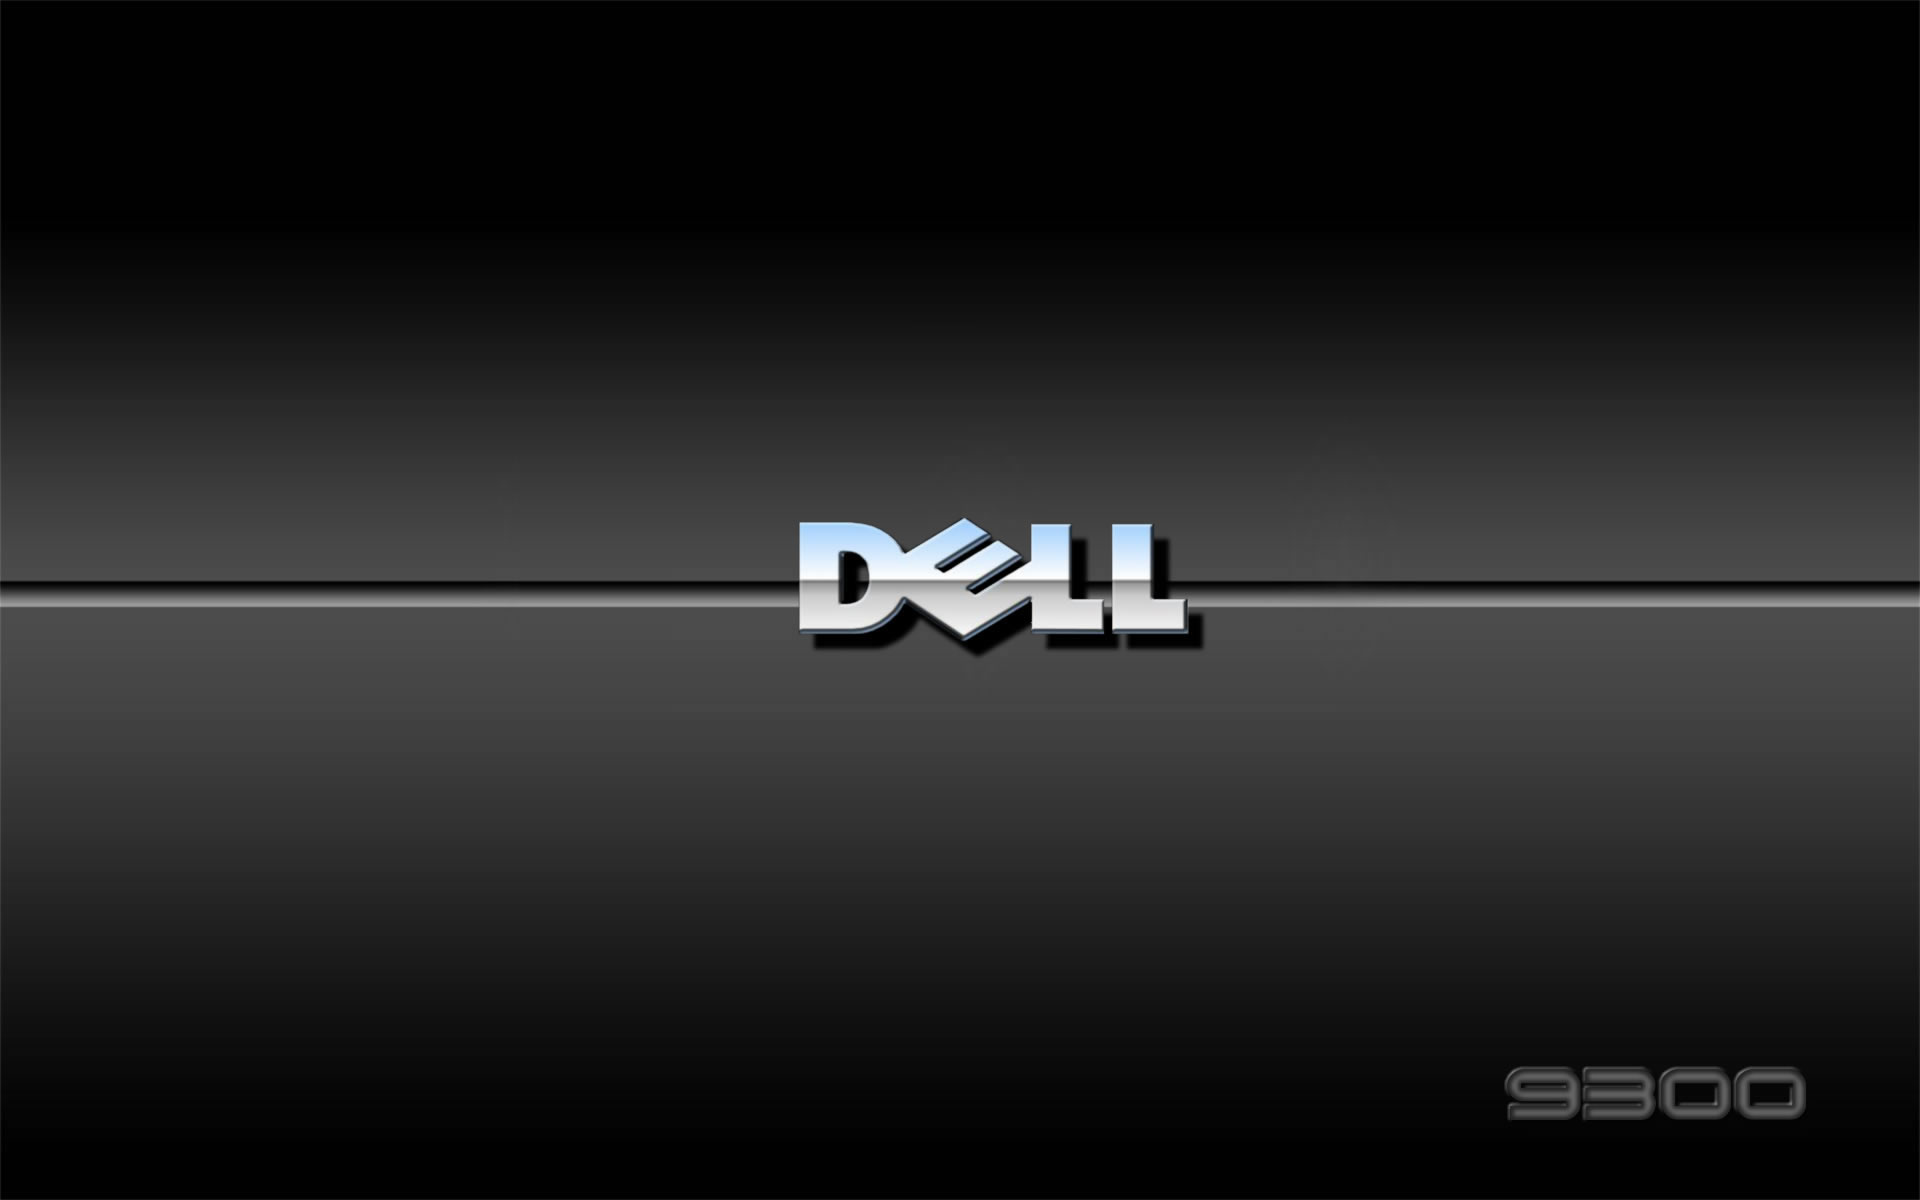 Dell Wallpaper Free Downloads